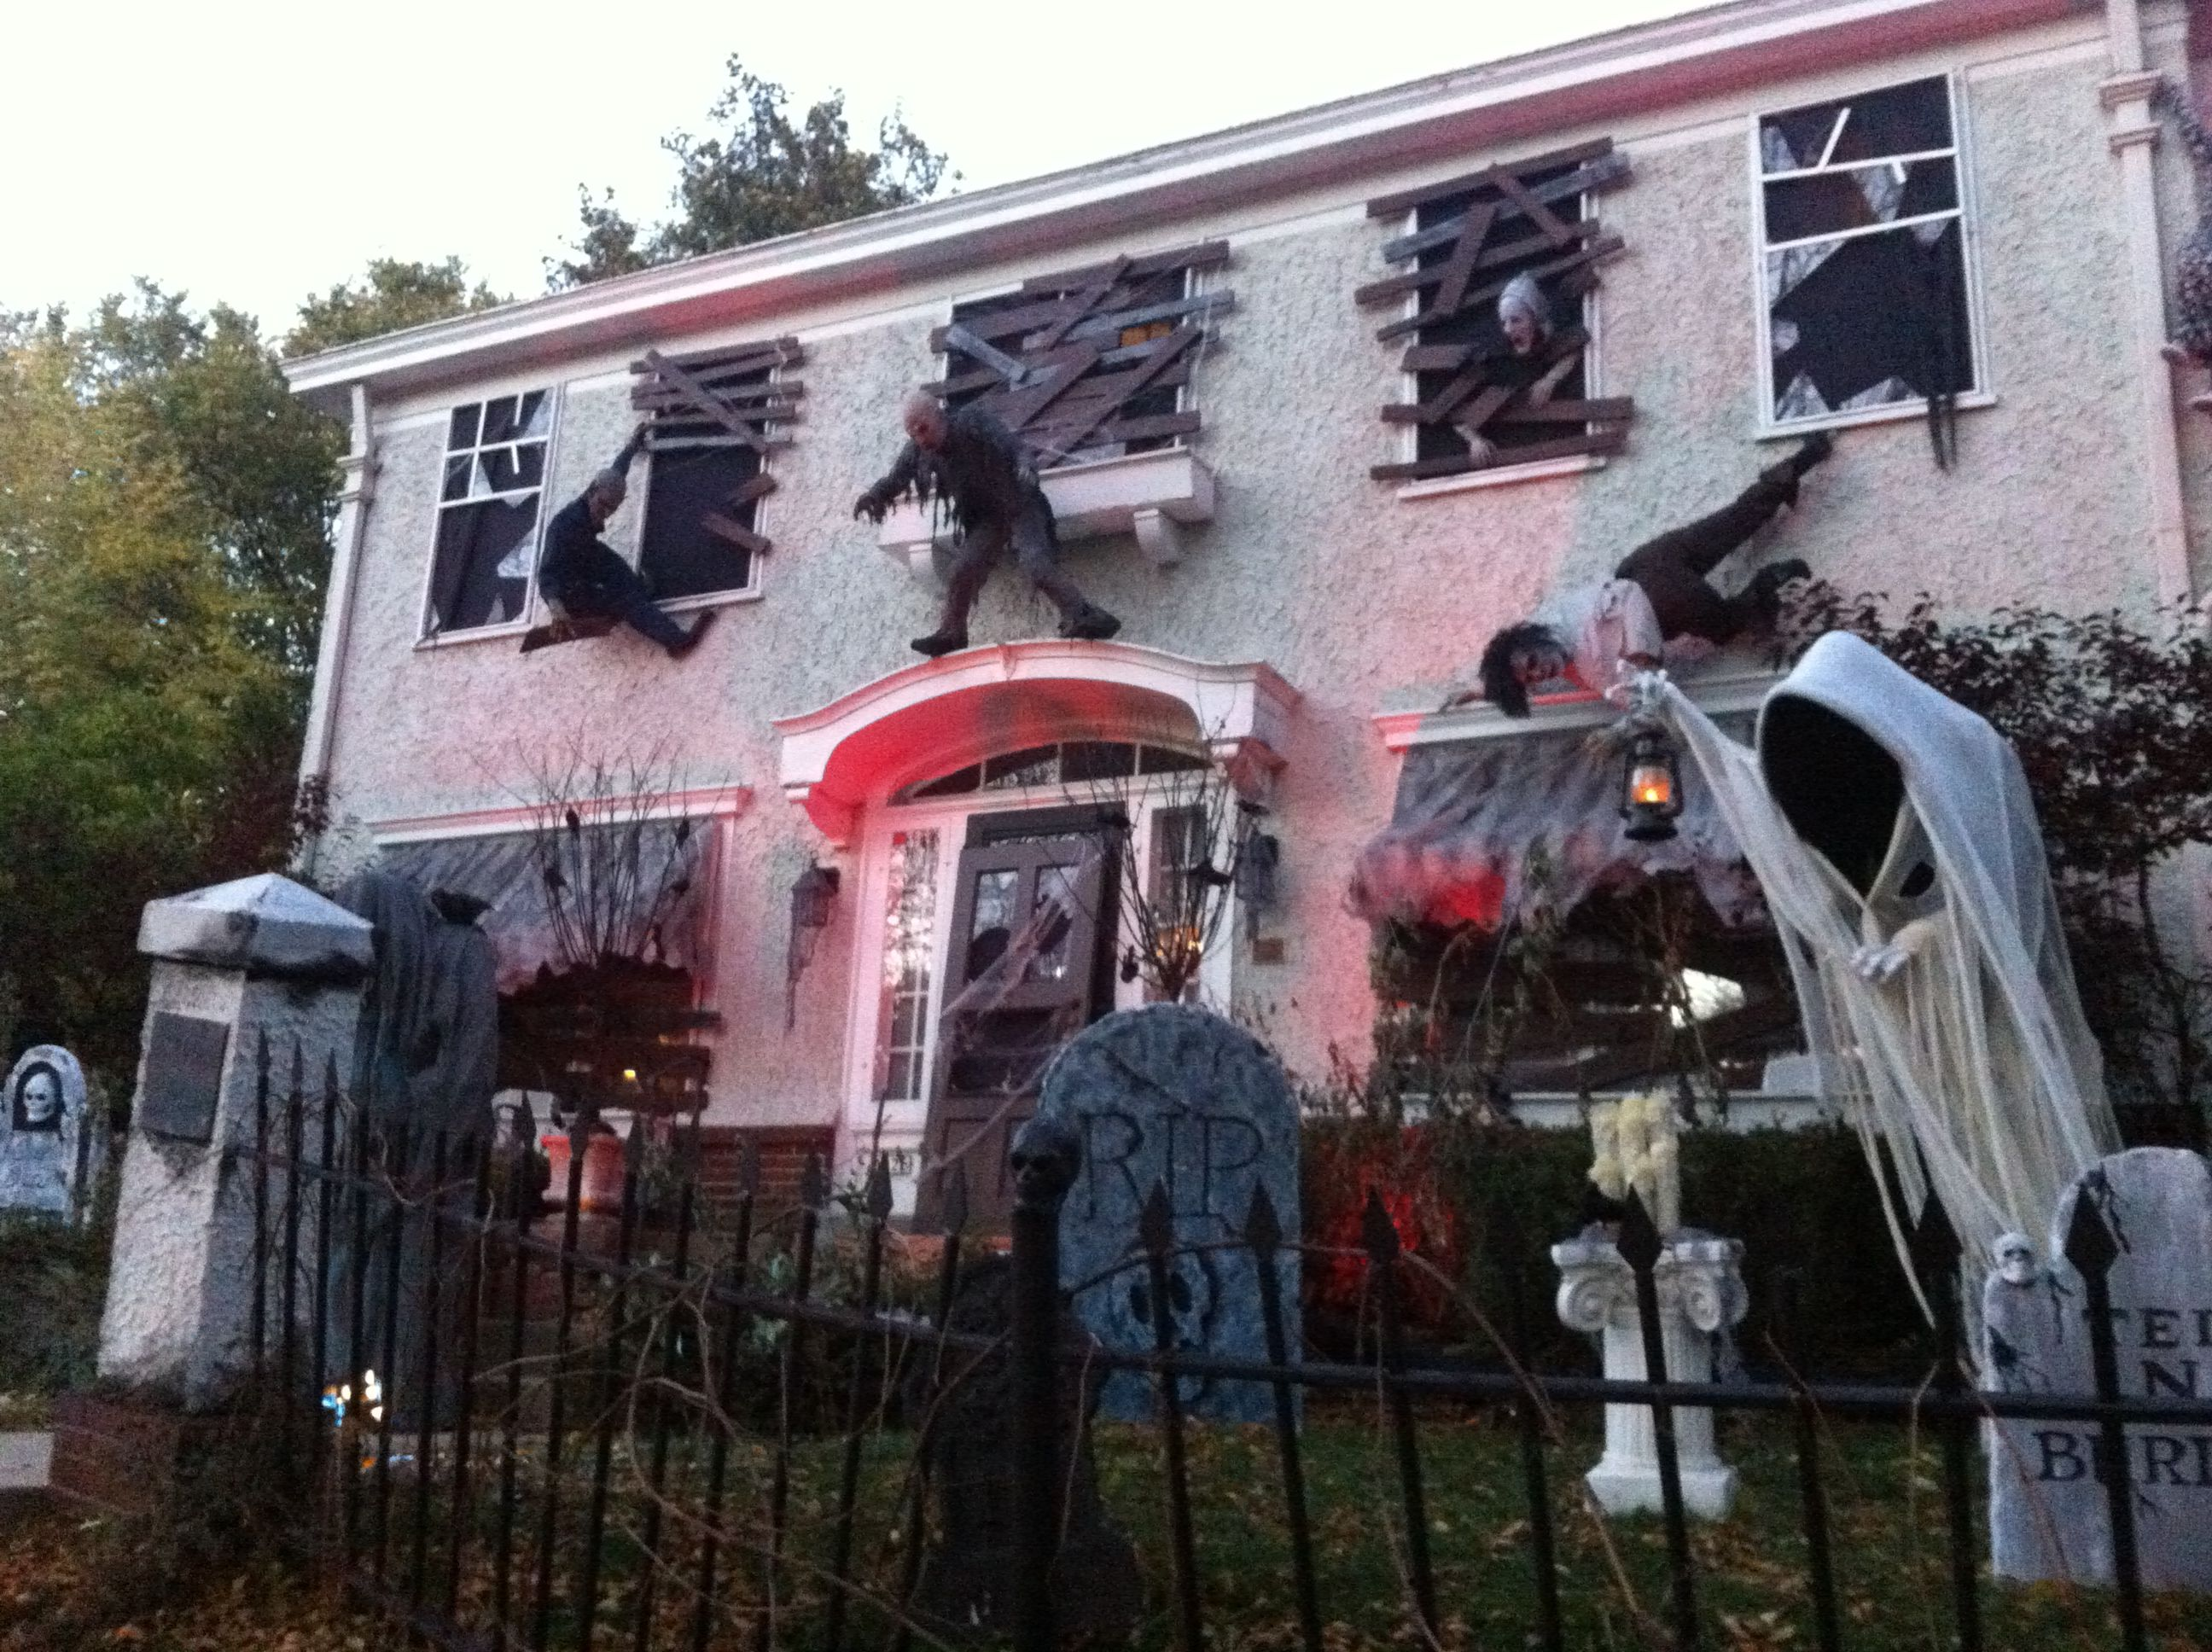 2014 update this wauwatosa home is up for sale and not decorated this year original story from every halloween one home in the washington - Homes Decorated For Halloween